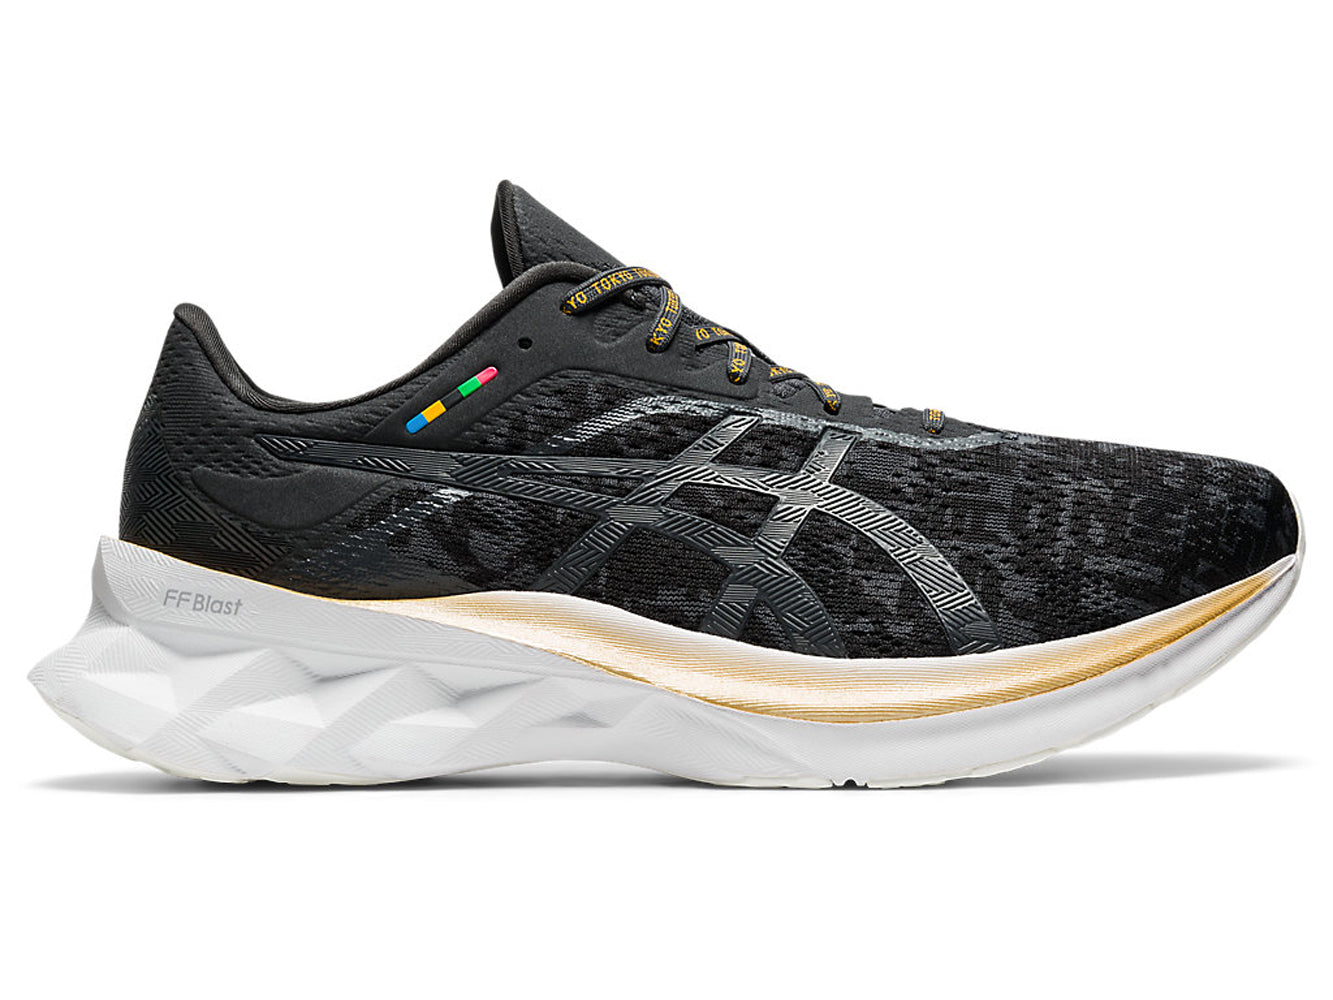 Men's Asics Novablast Running Shoe in Black/Graphite Grey from the side